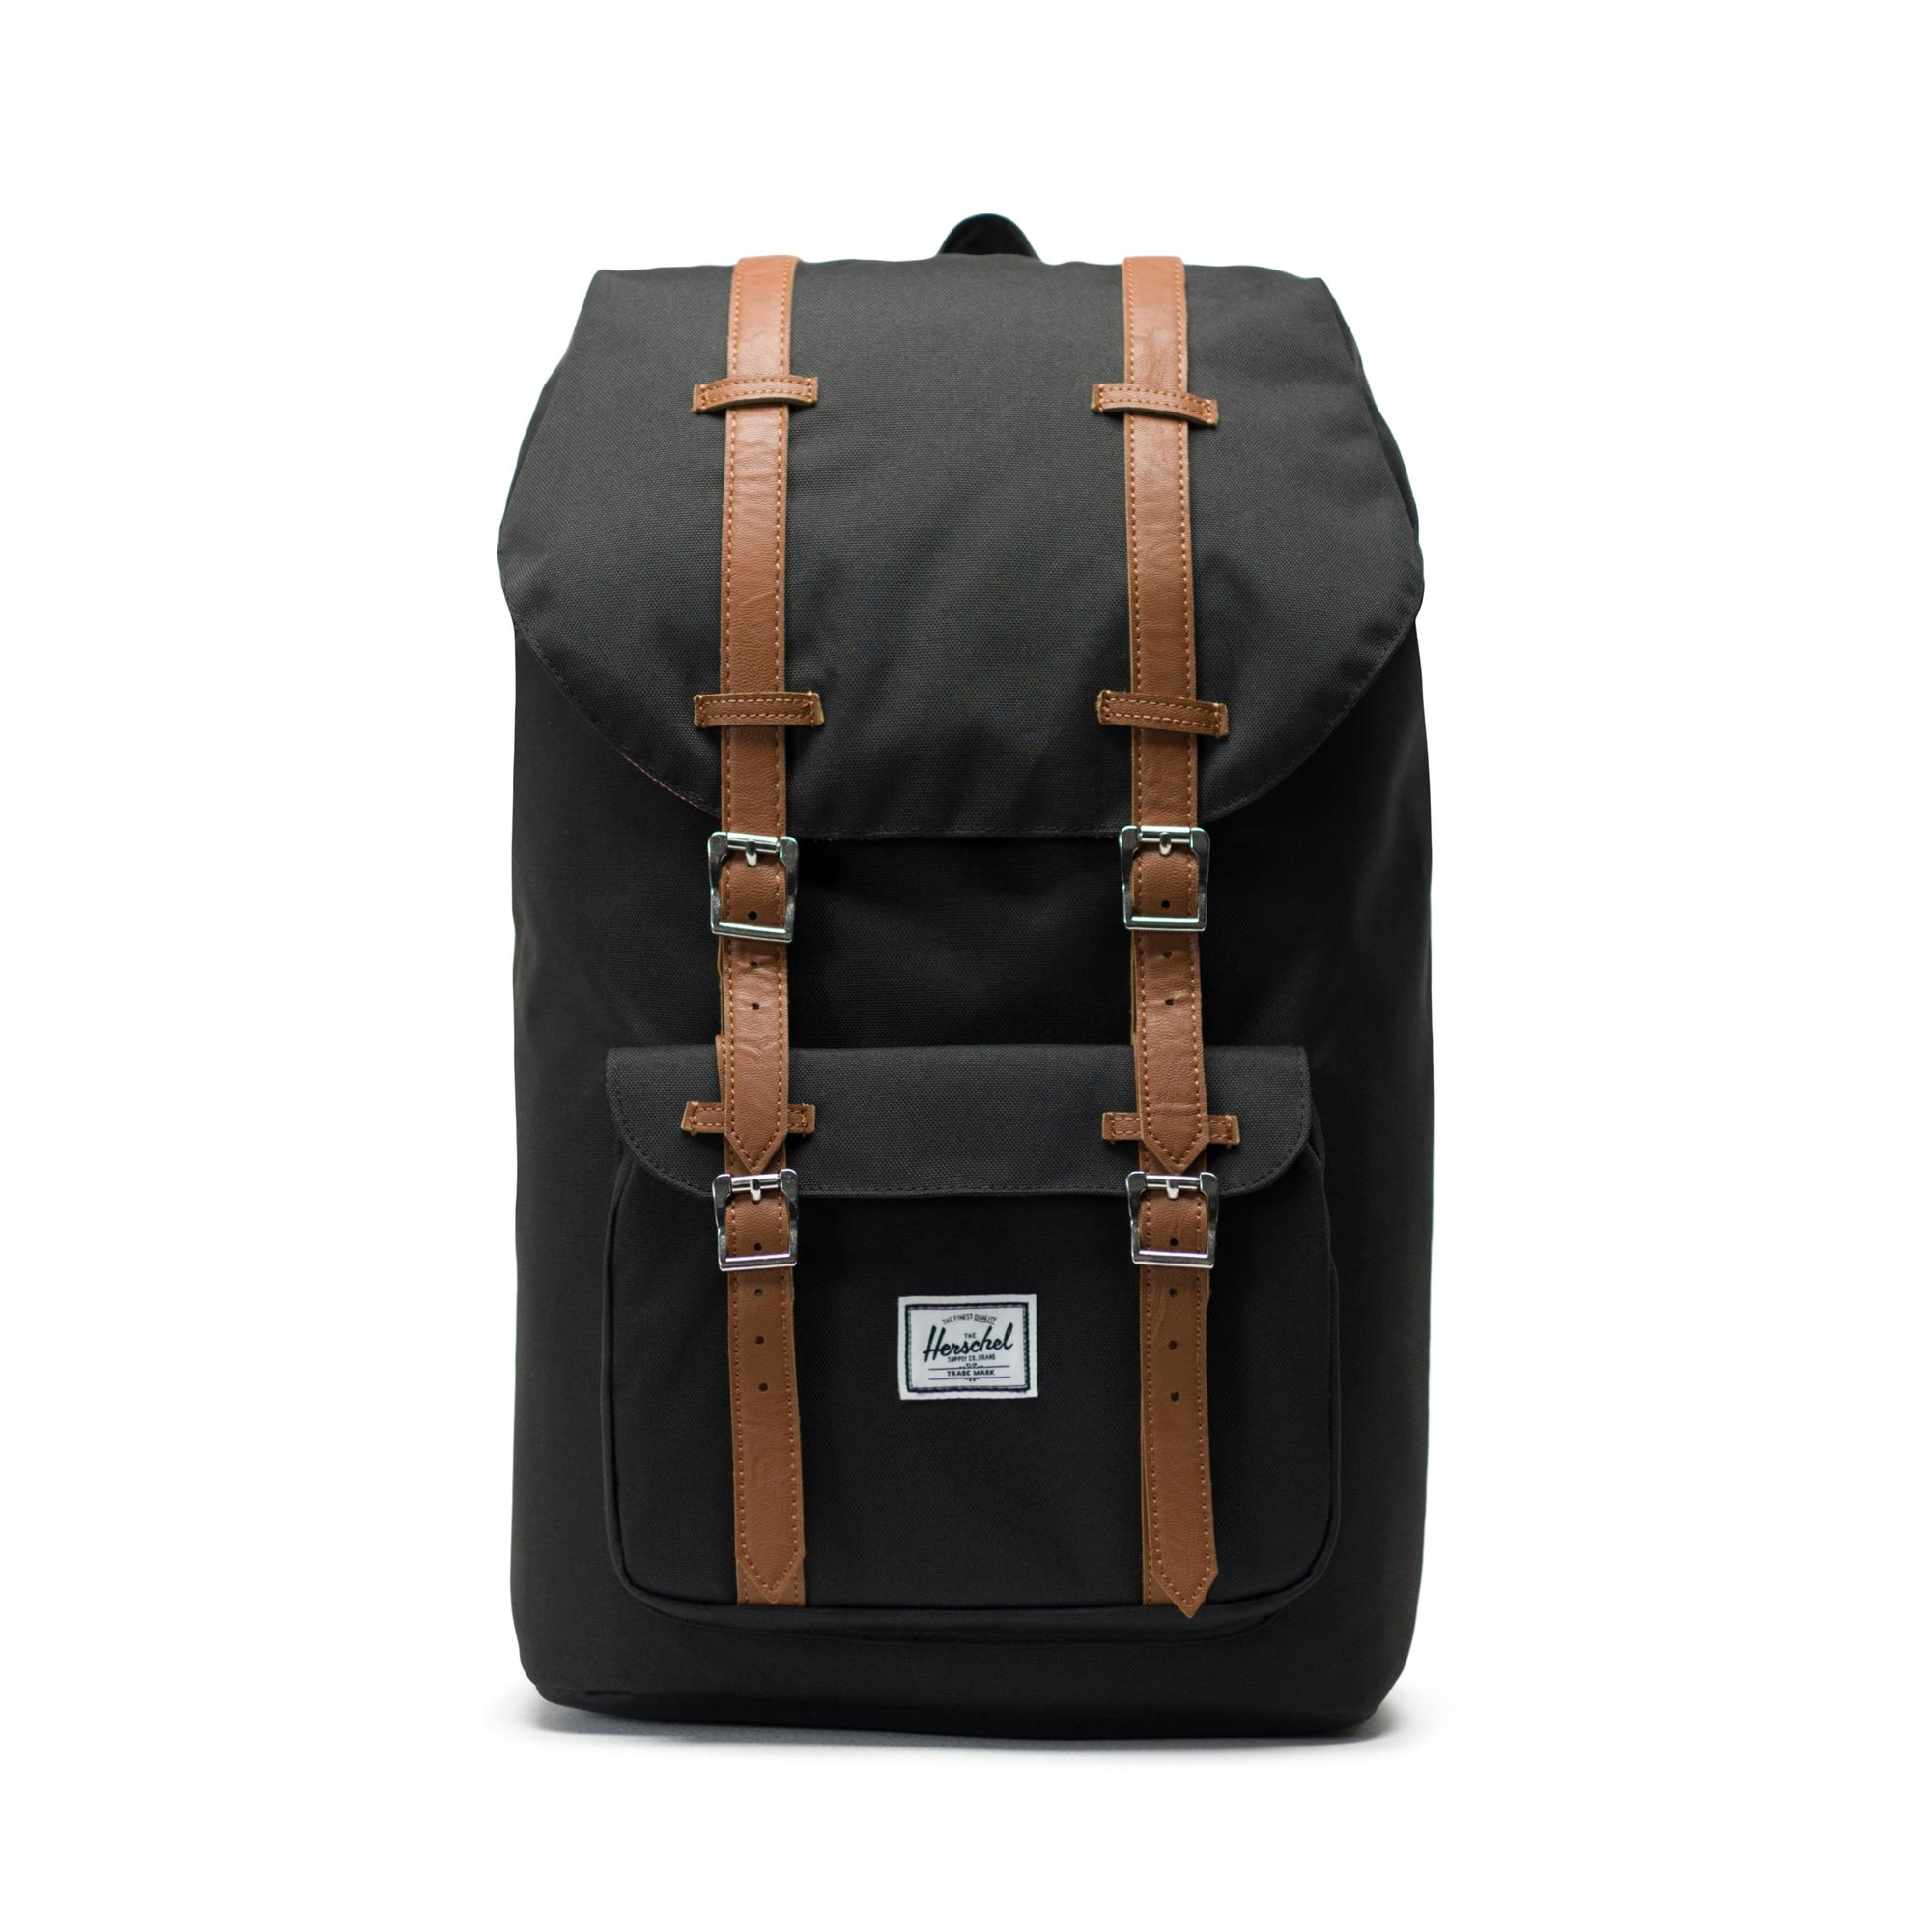 eebadd3fbd8 Herschel Little America Backpack